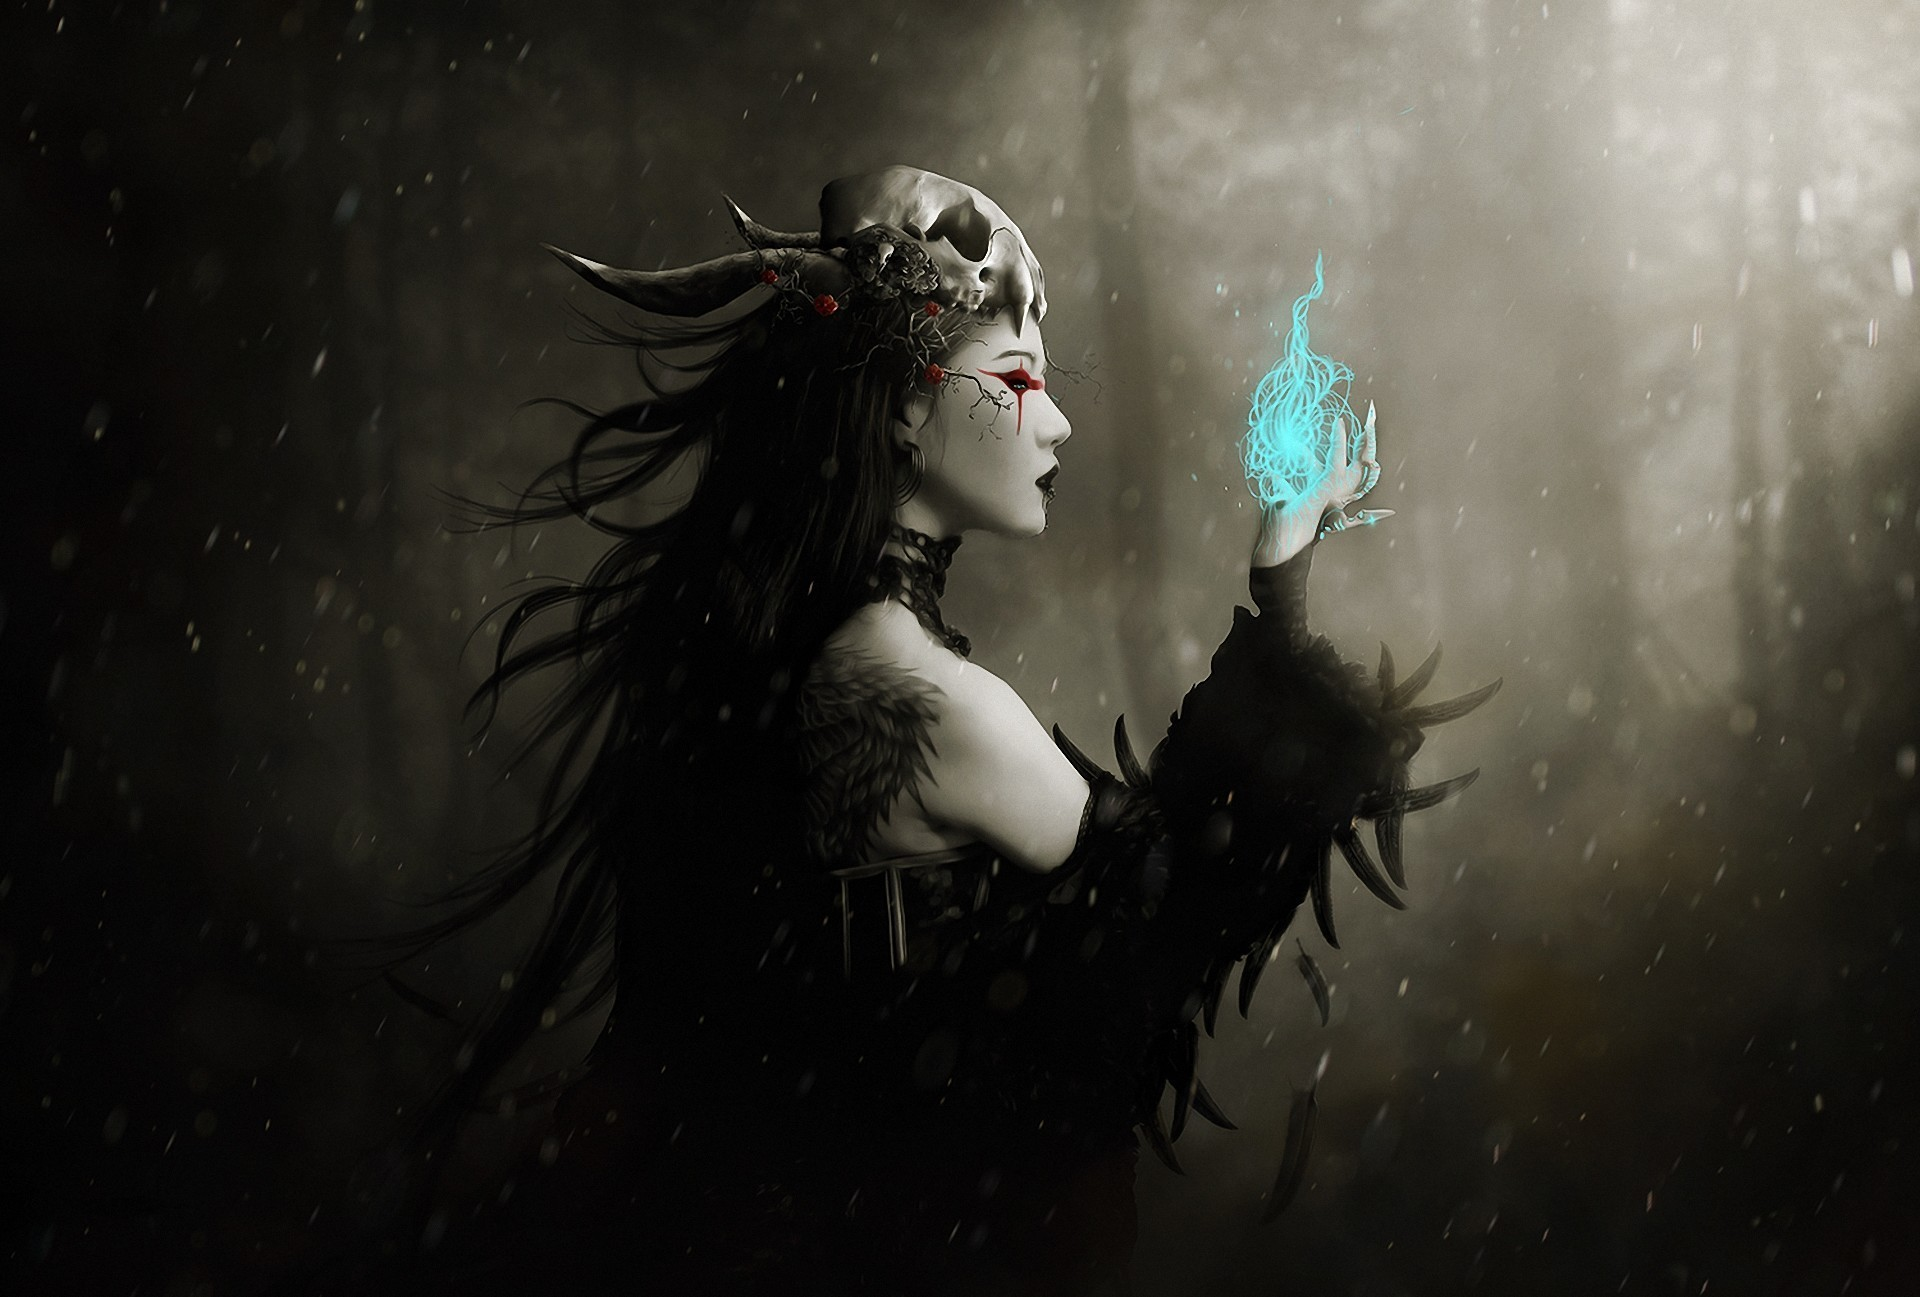 gothic dark fantasy art witch magic spell occult skull women females 1920x1297